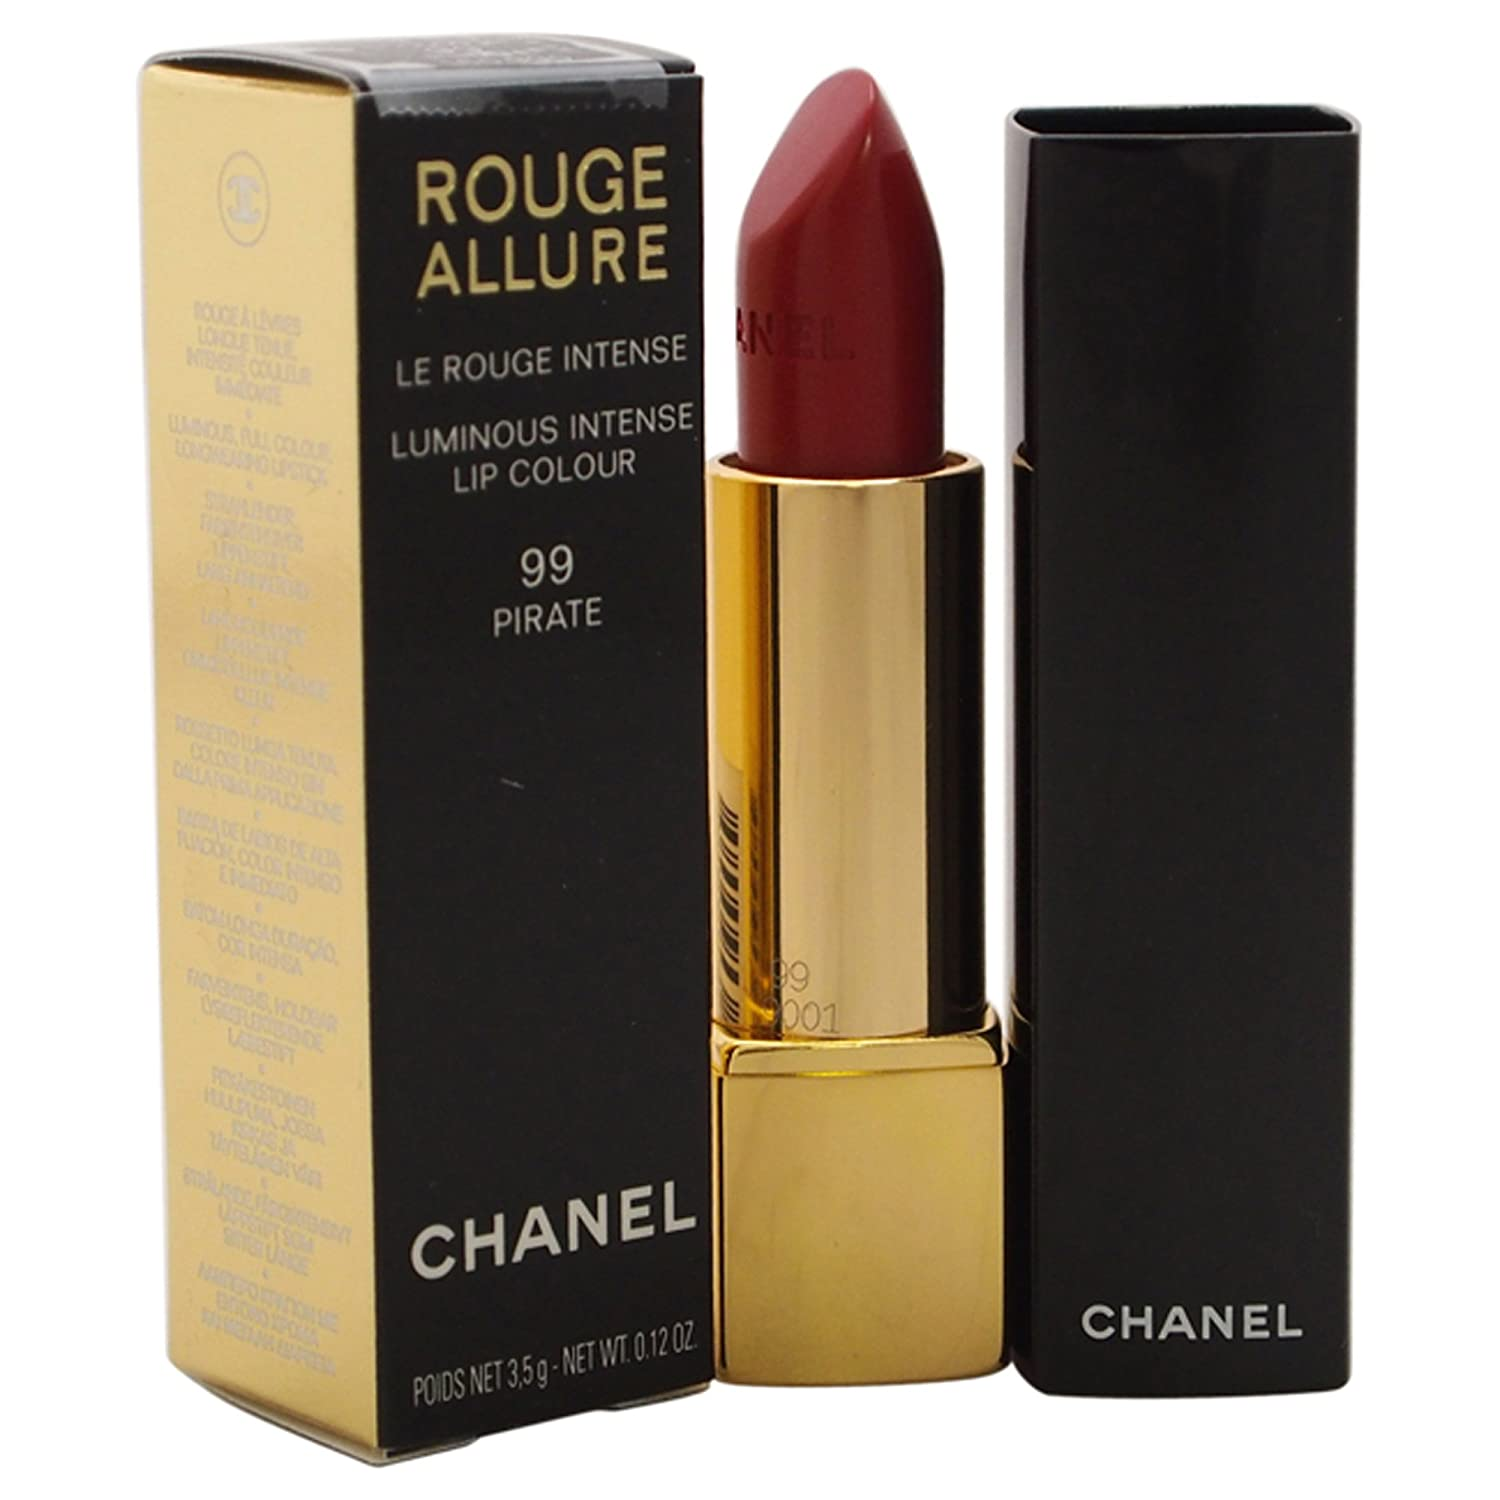 Rouge Allure - Chanel